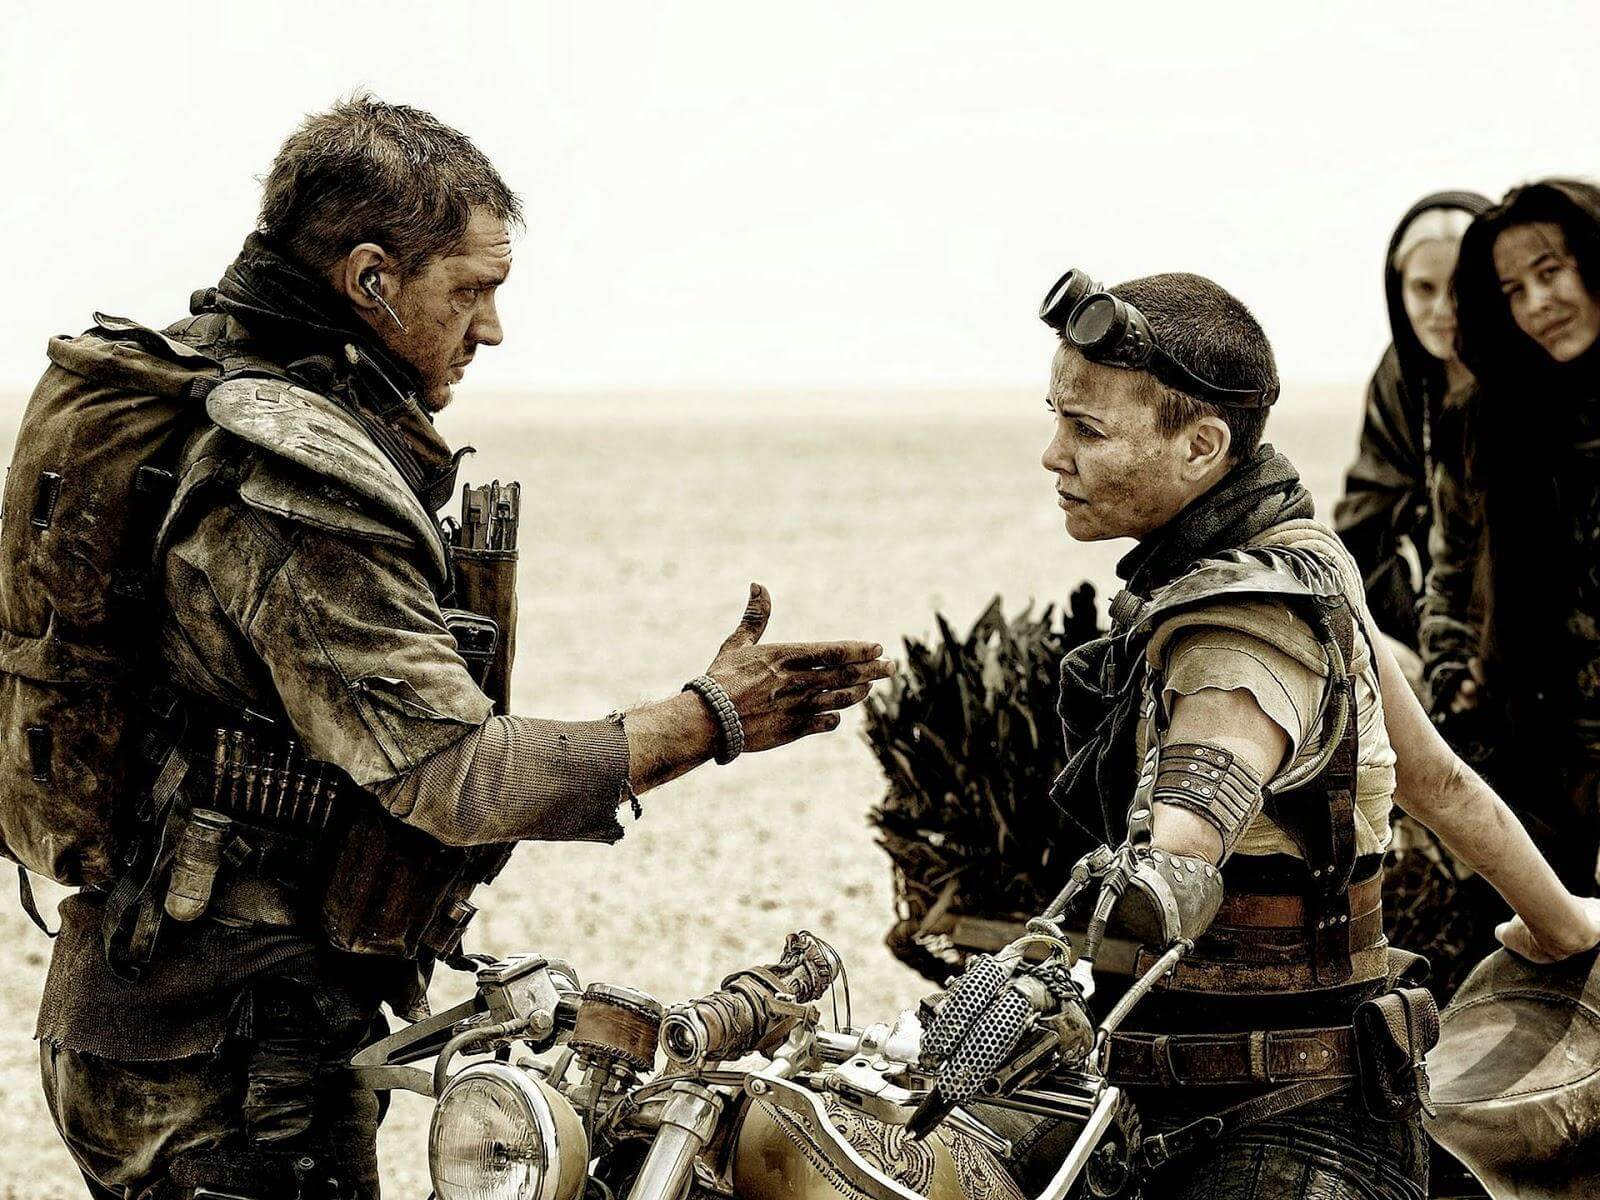 Hair and Make Up - Hair and Make Up in Mad Max - ProductionBeast